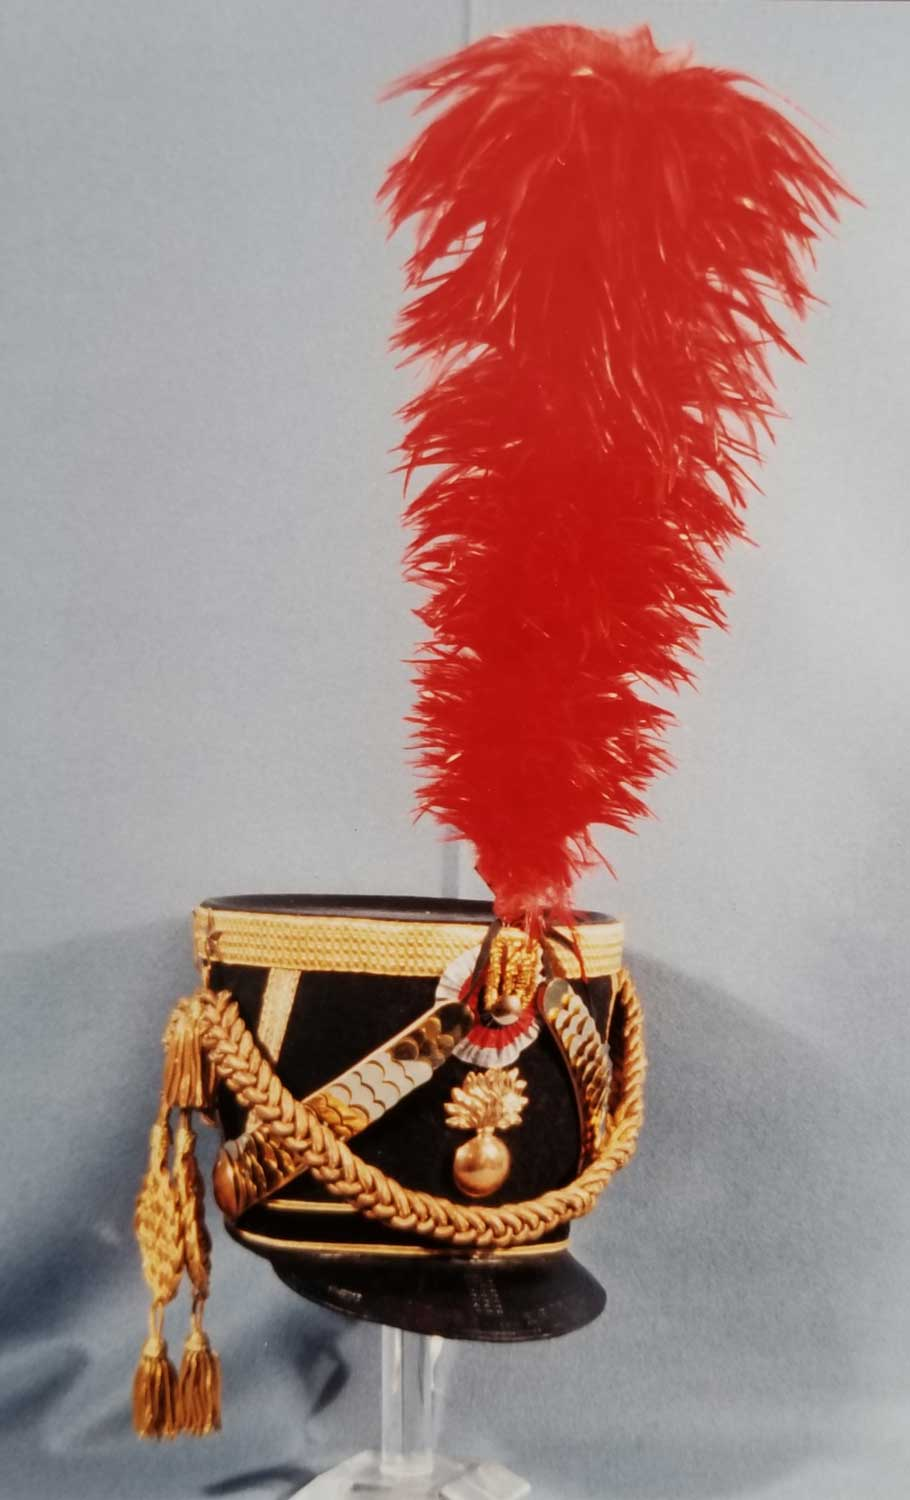 French, Legion Irlandaise, Officier